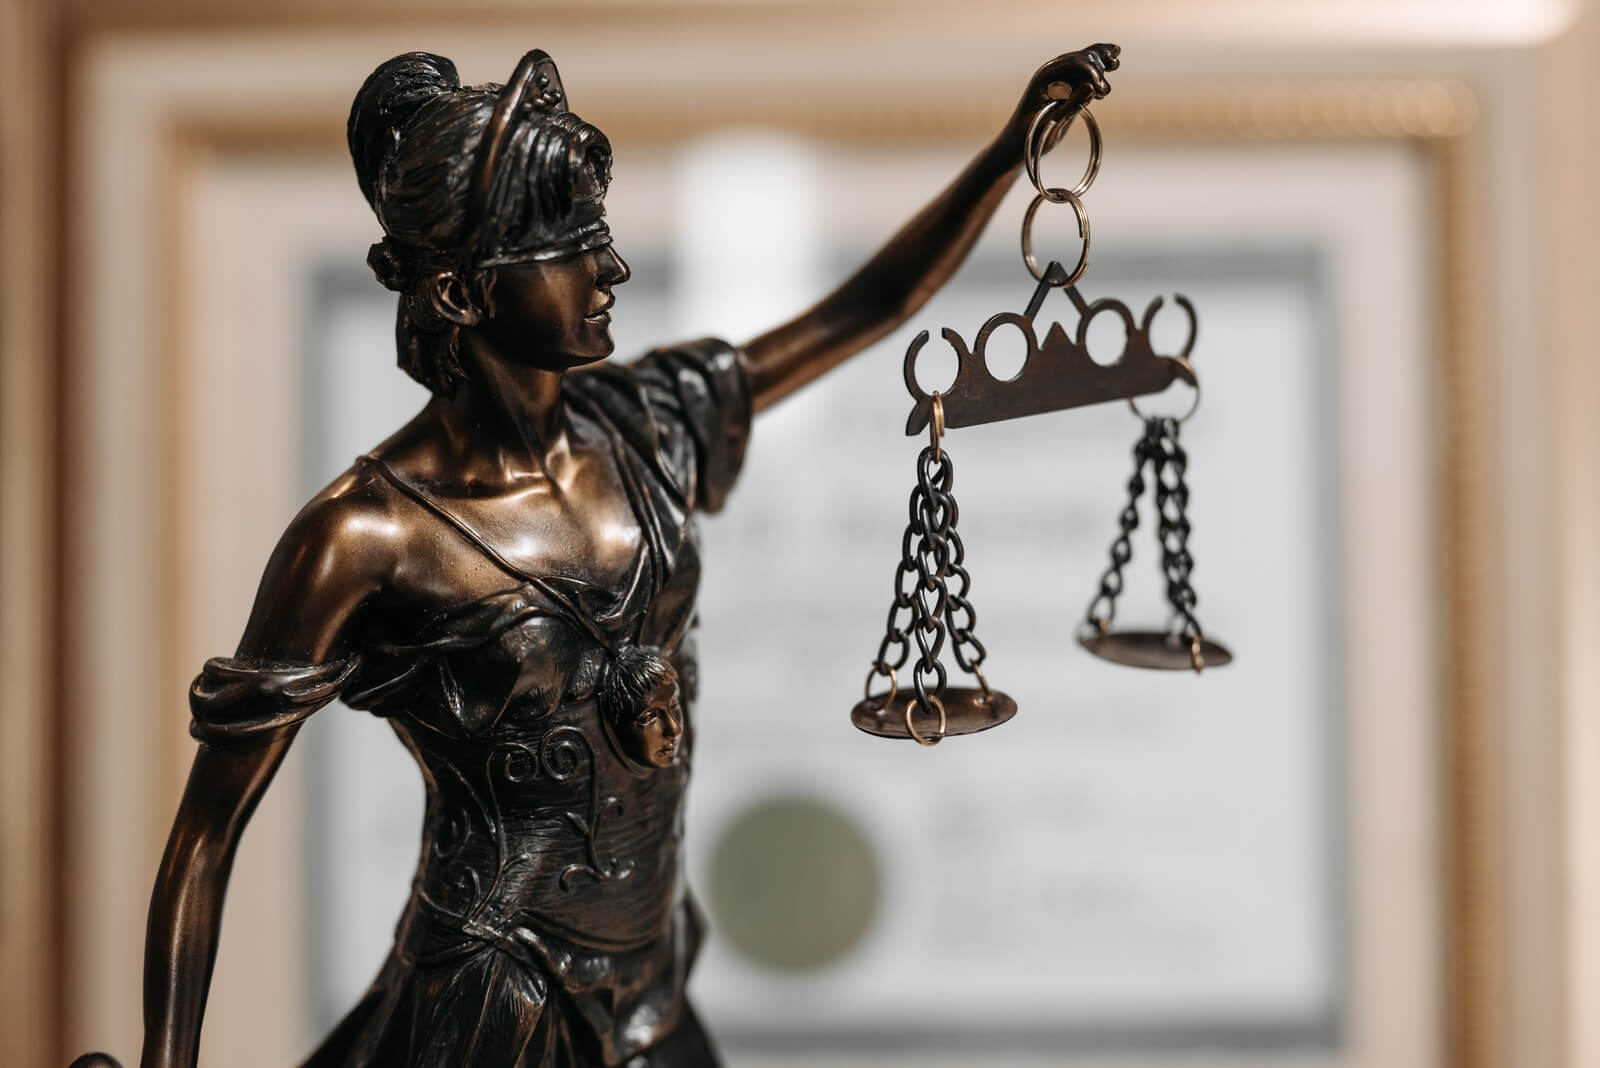 statuette of Justice holding balanced scales